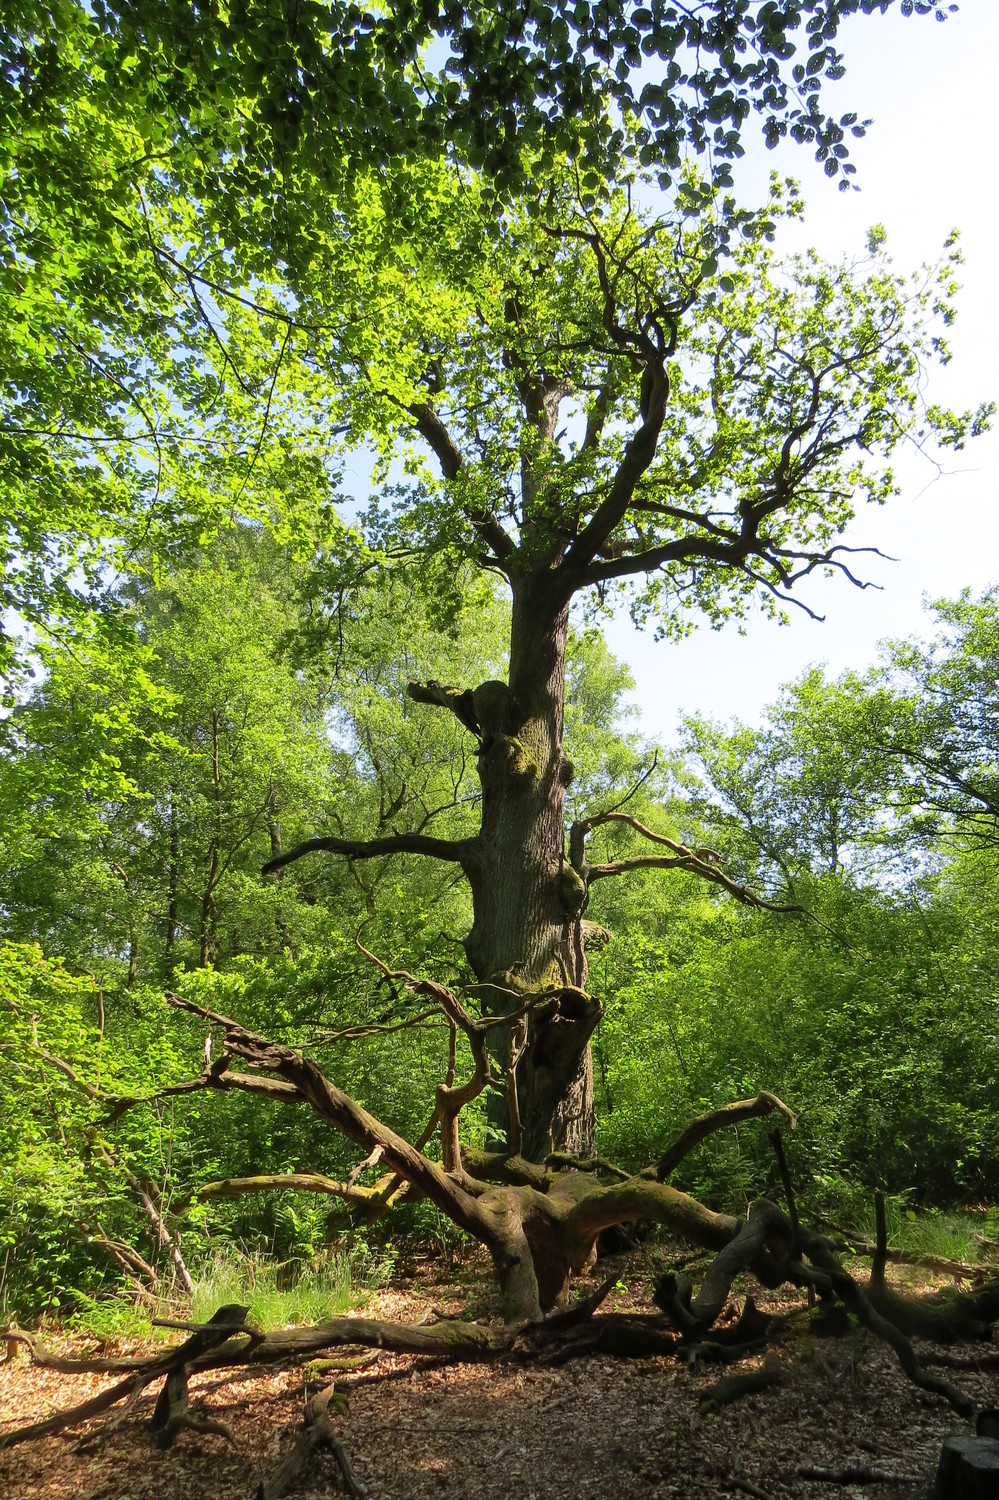 Old oak in the Sababurg primeval forest: formerly used as a pasture tree for feeding livestock in the forest, today a tree that is a living habitat offering many species a chance of survival.